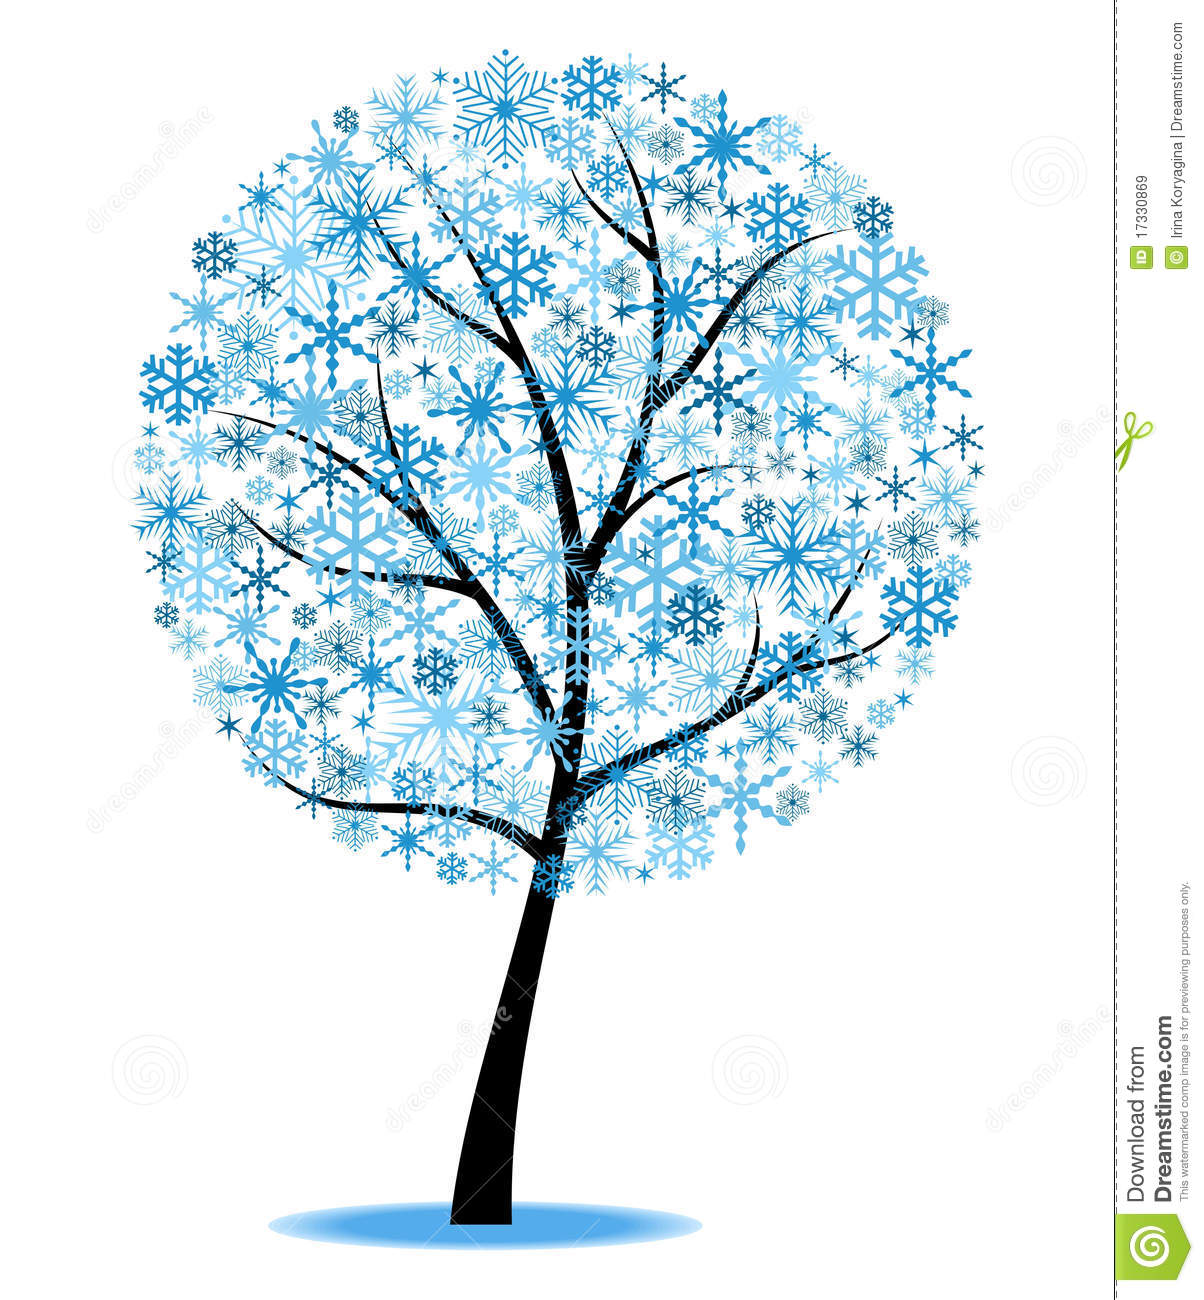 Winter tree clip art free.